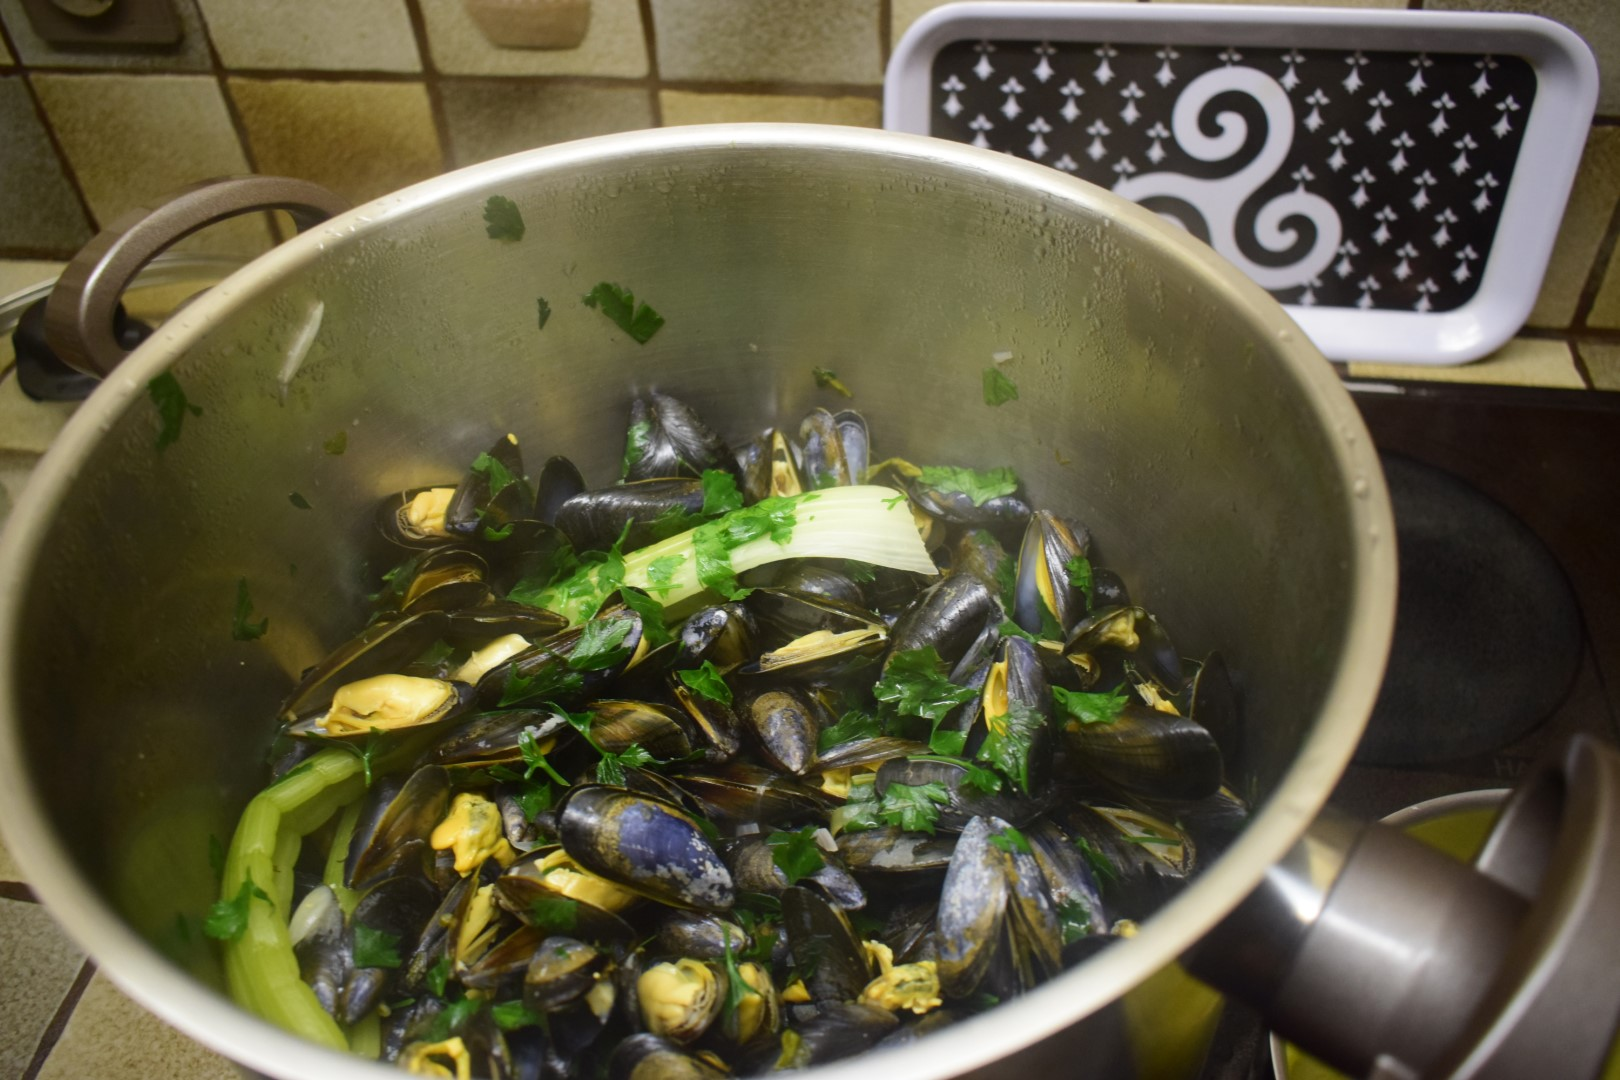 Mussels and herbs dinner in the family home, Saint-Michel